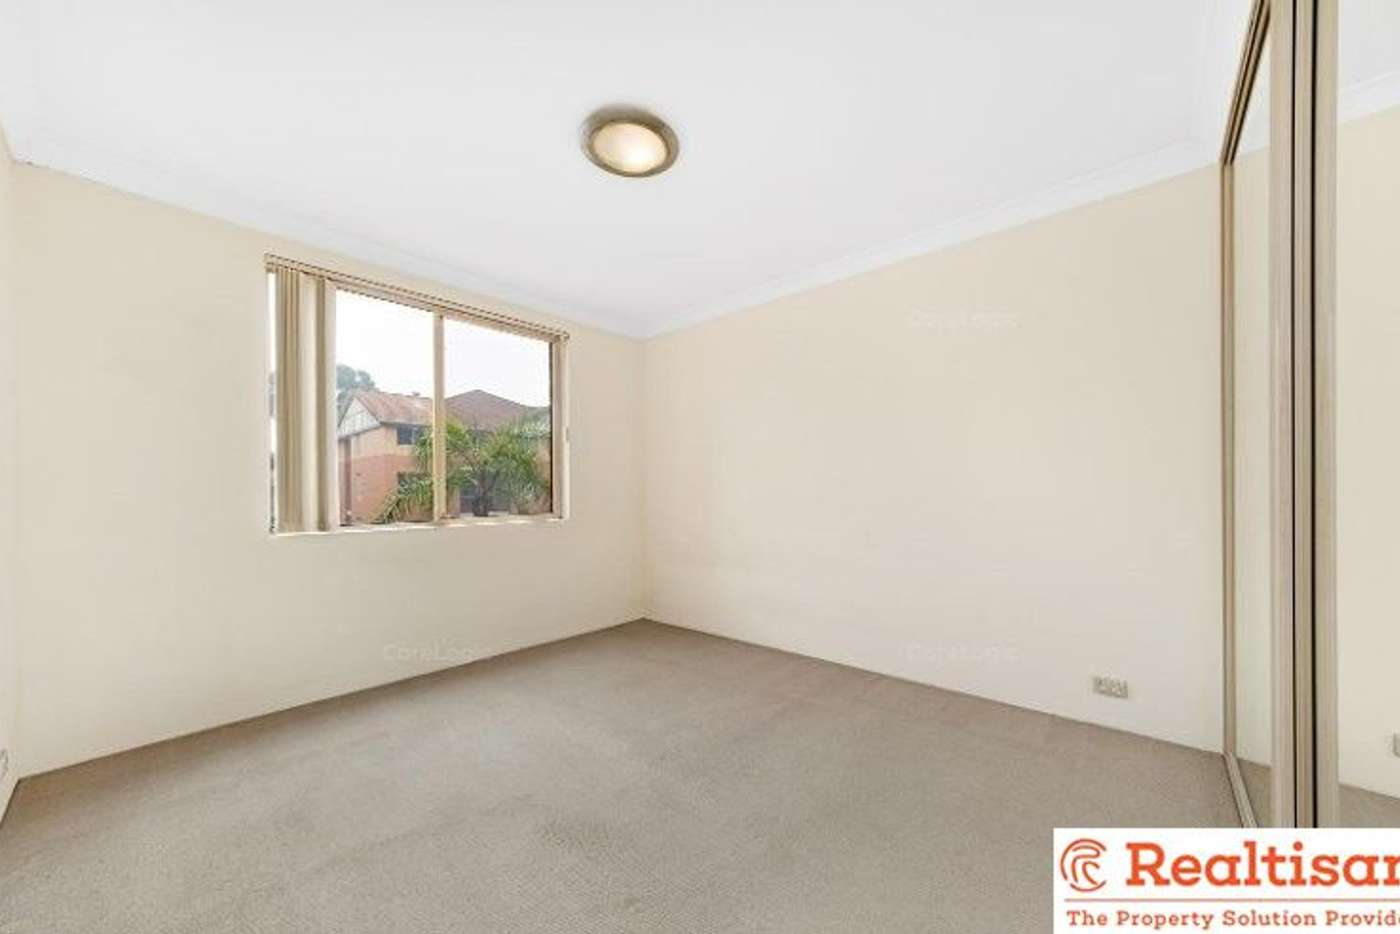 Main view of Homely apartment listing, 19-21 George Street, North Strathfield NSW 2137